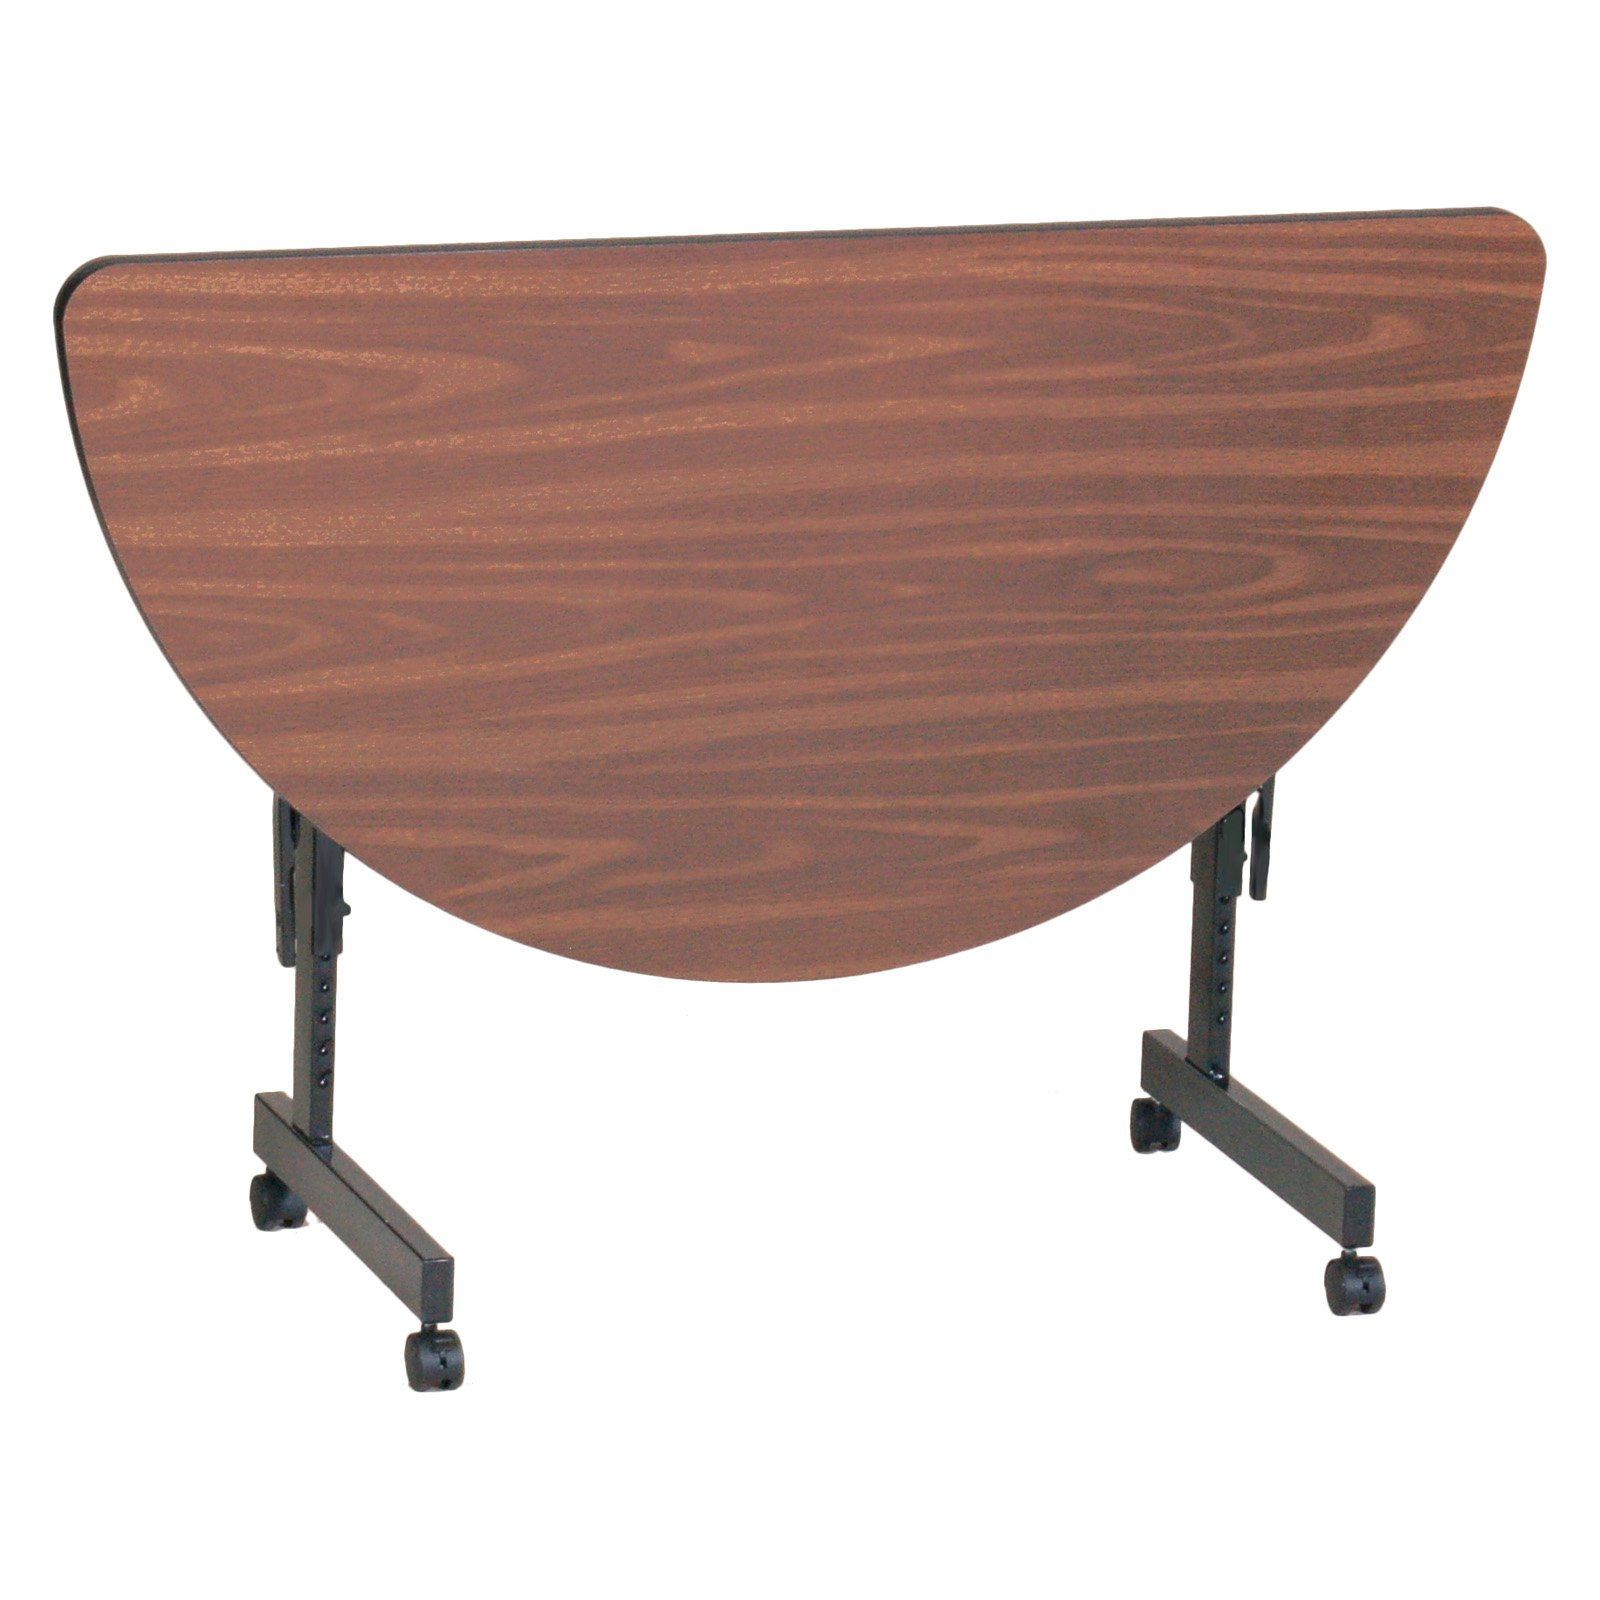 Correll EconoLine Flip Top Table - Melamine Top - 24x48 Half Round